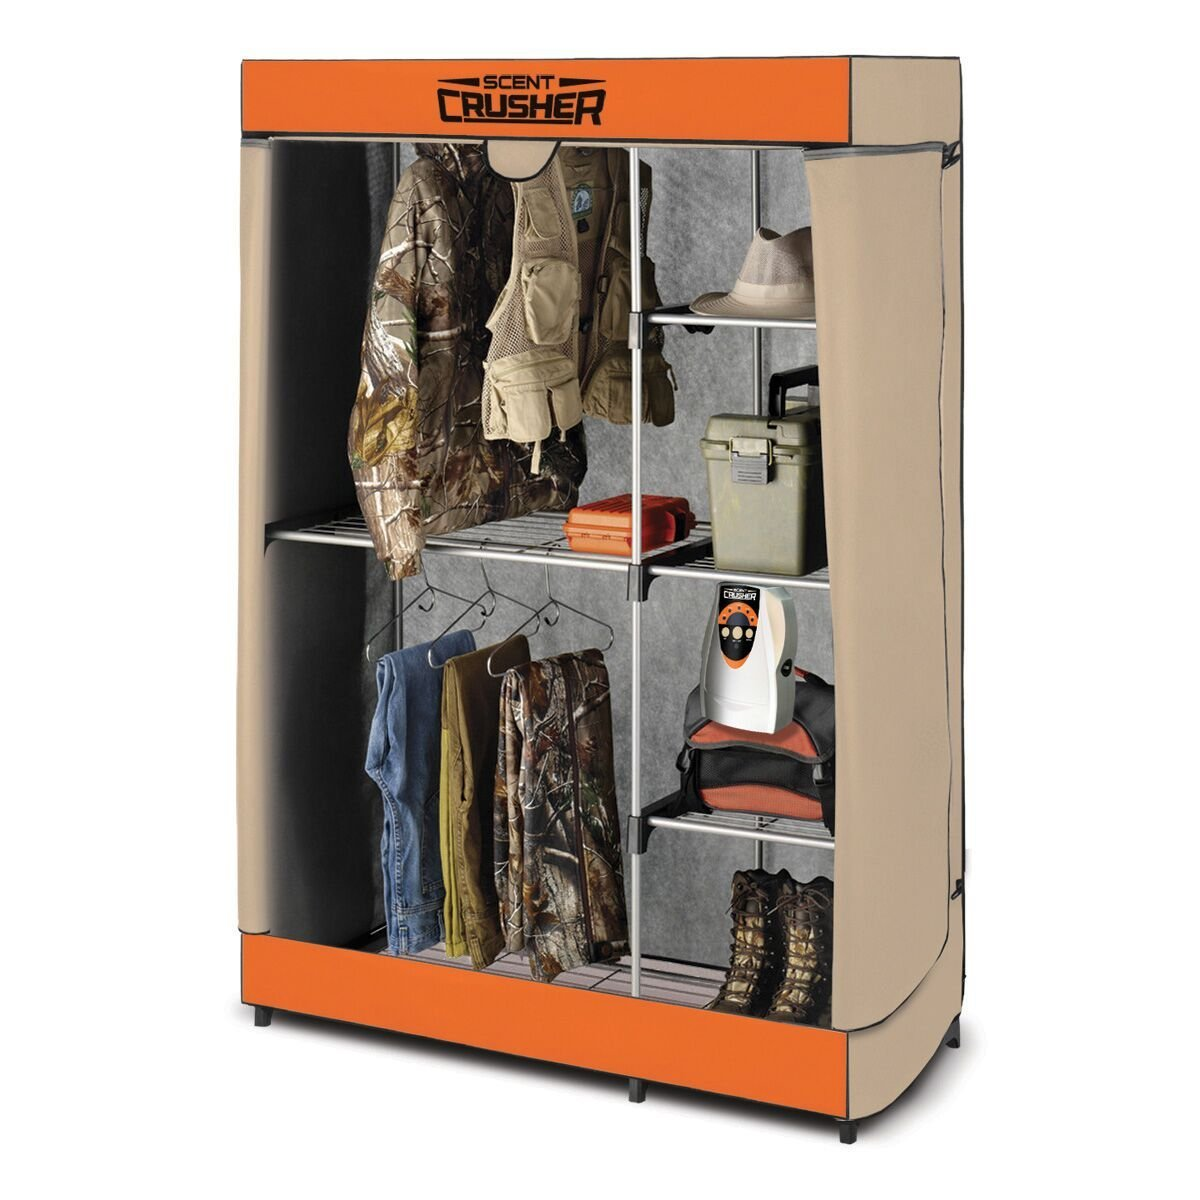 Scent Crusher Flexible Hunter Closet with Ozone Generator by Scent Crusher